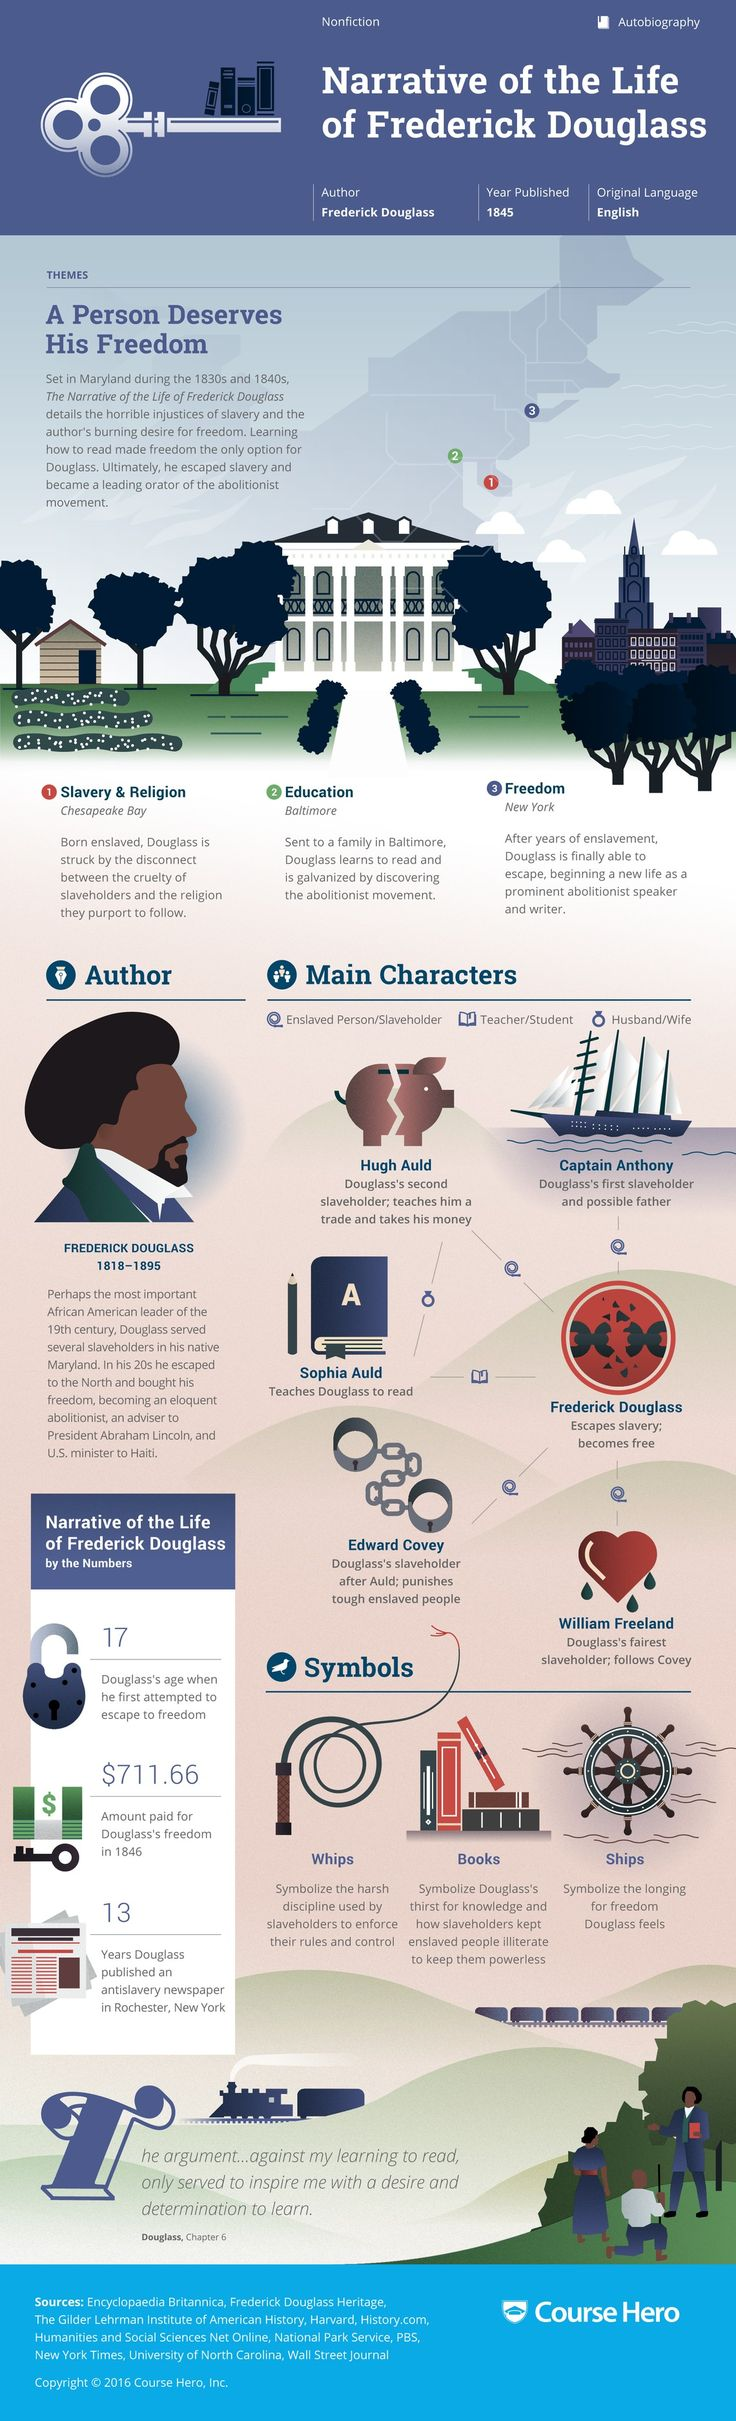 Narrative of the Life of Frederick Douglass Infographic   Course Hero